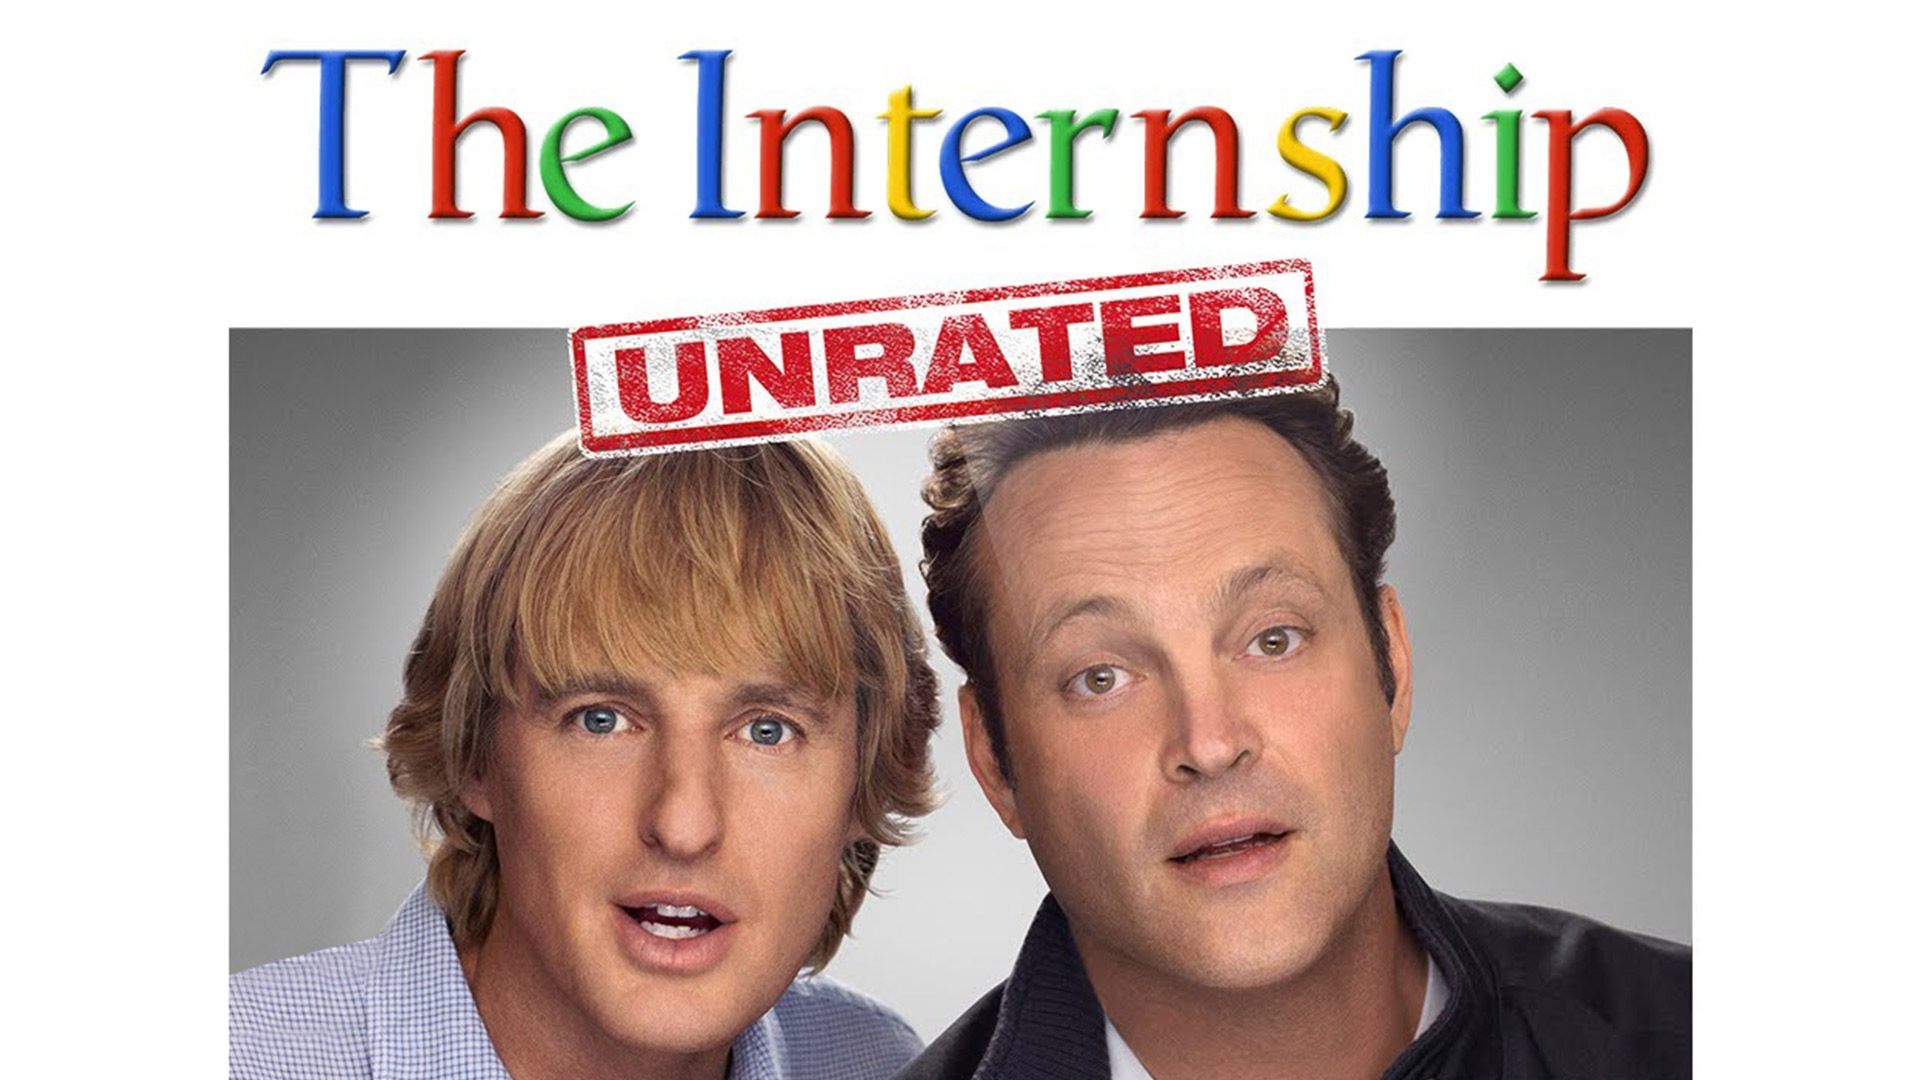 The Internship Unrated